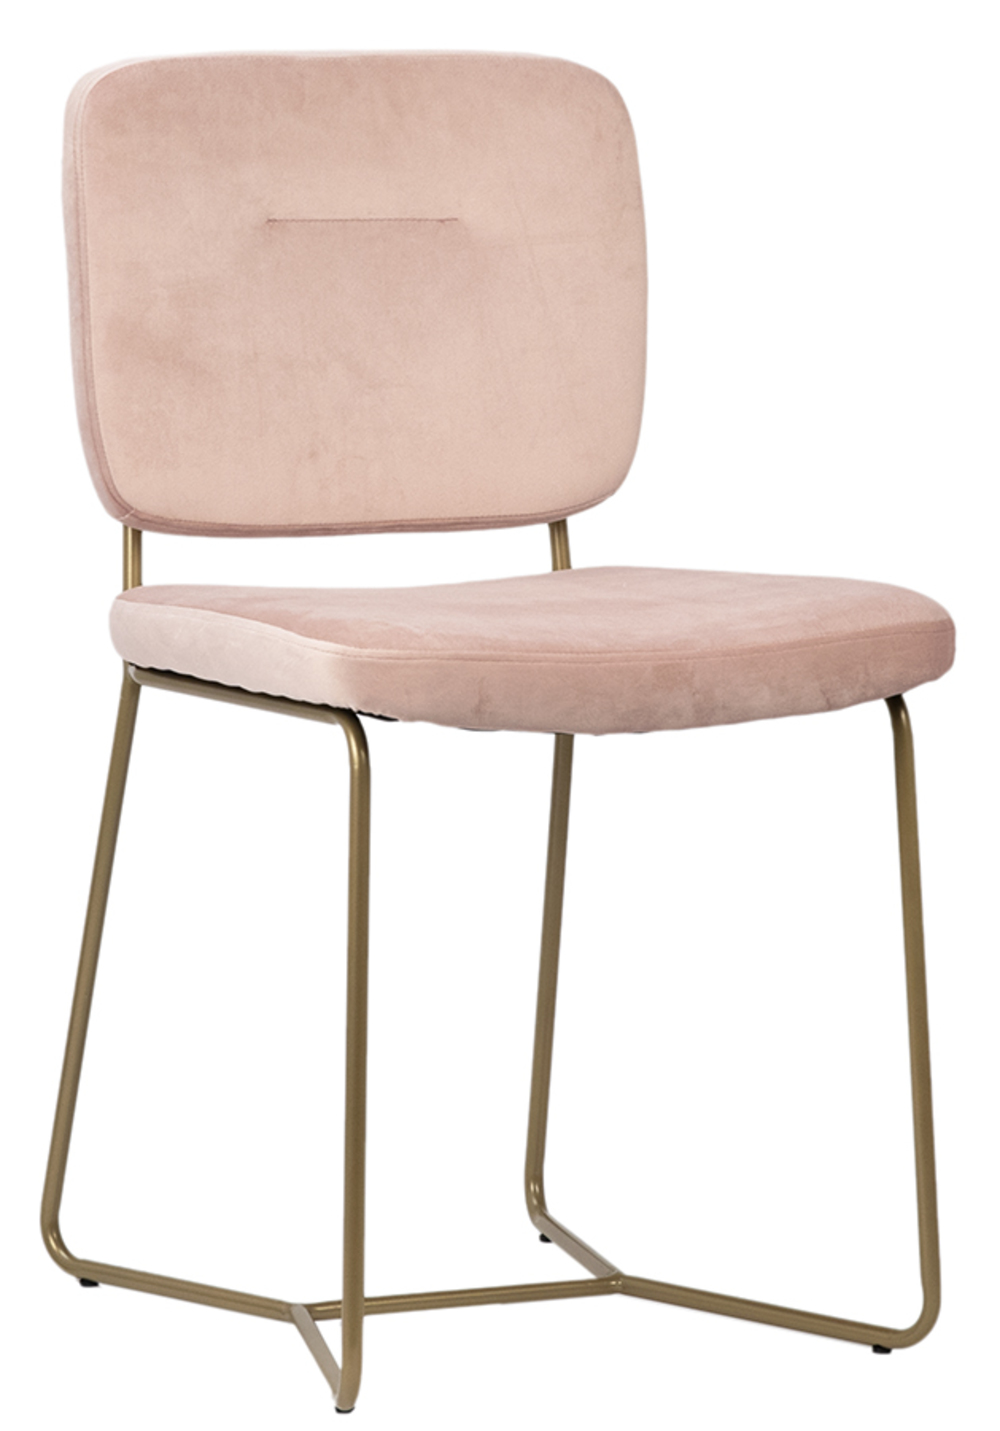 Dovetail Furniture - Almira Dining Chair